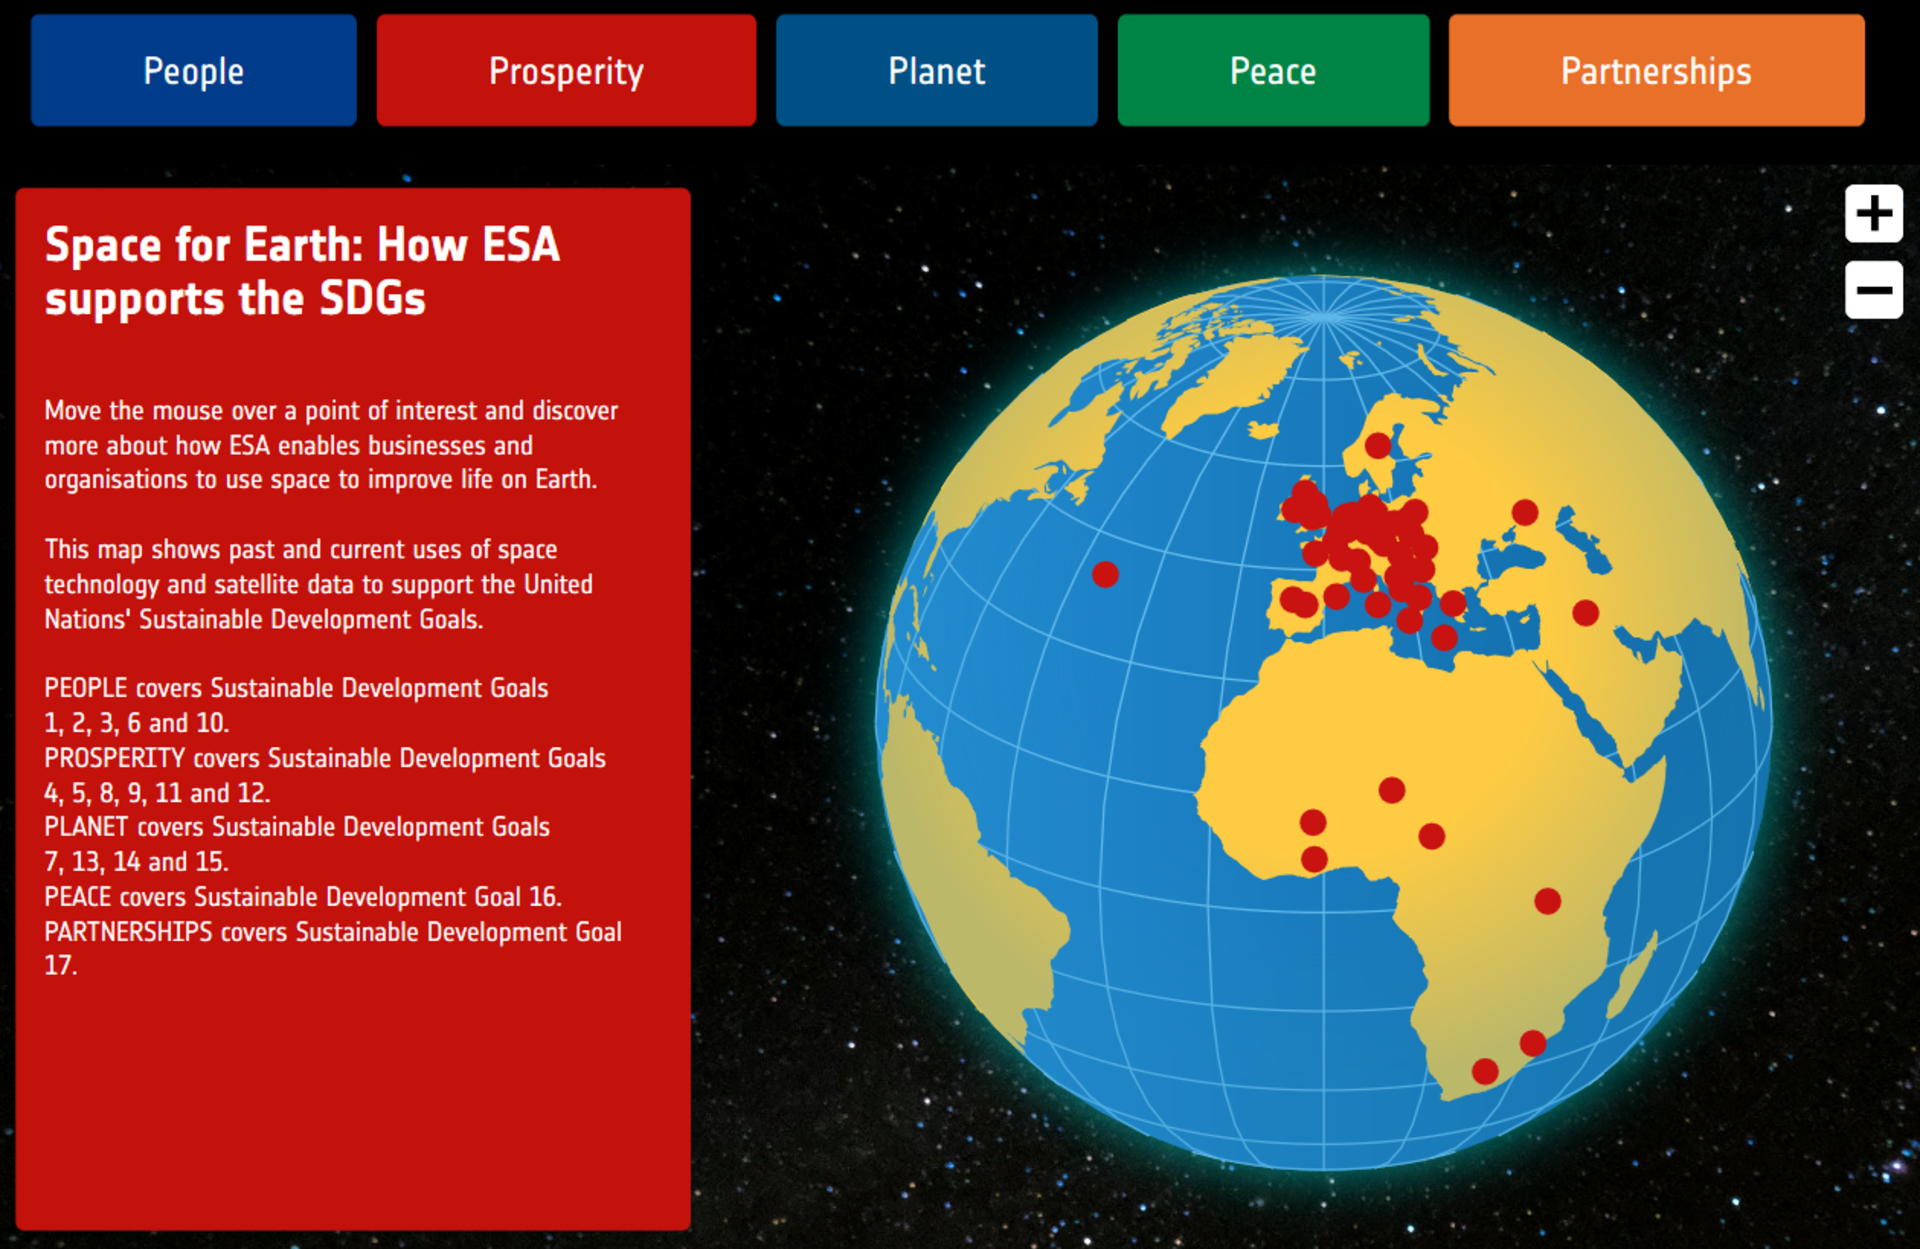 Space for Earth: How ESA supports the SDGs